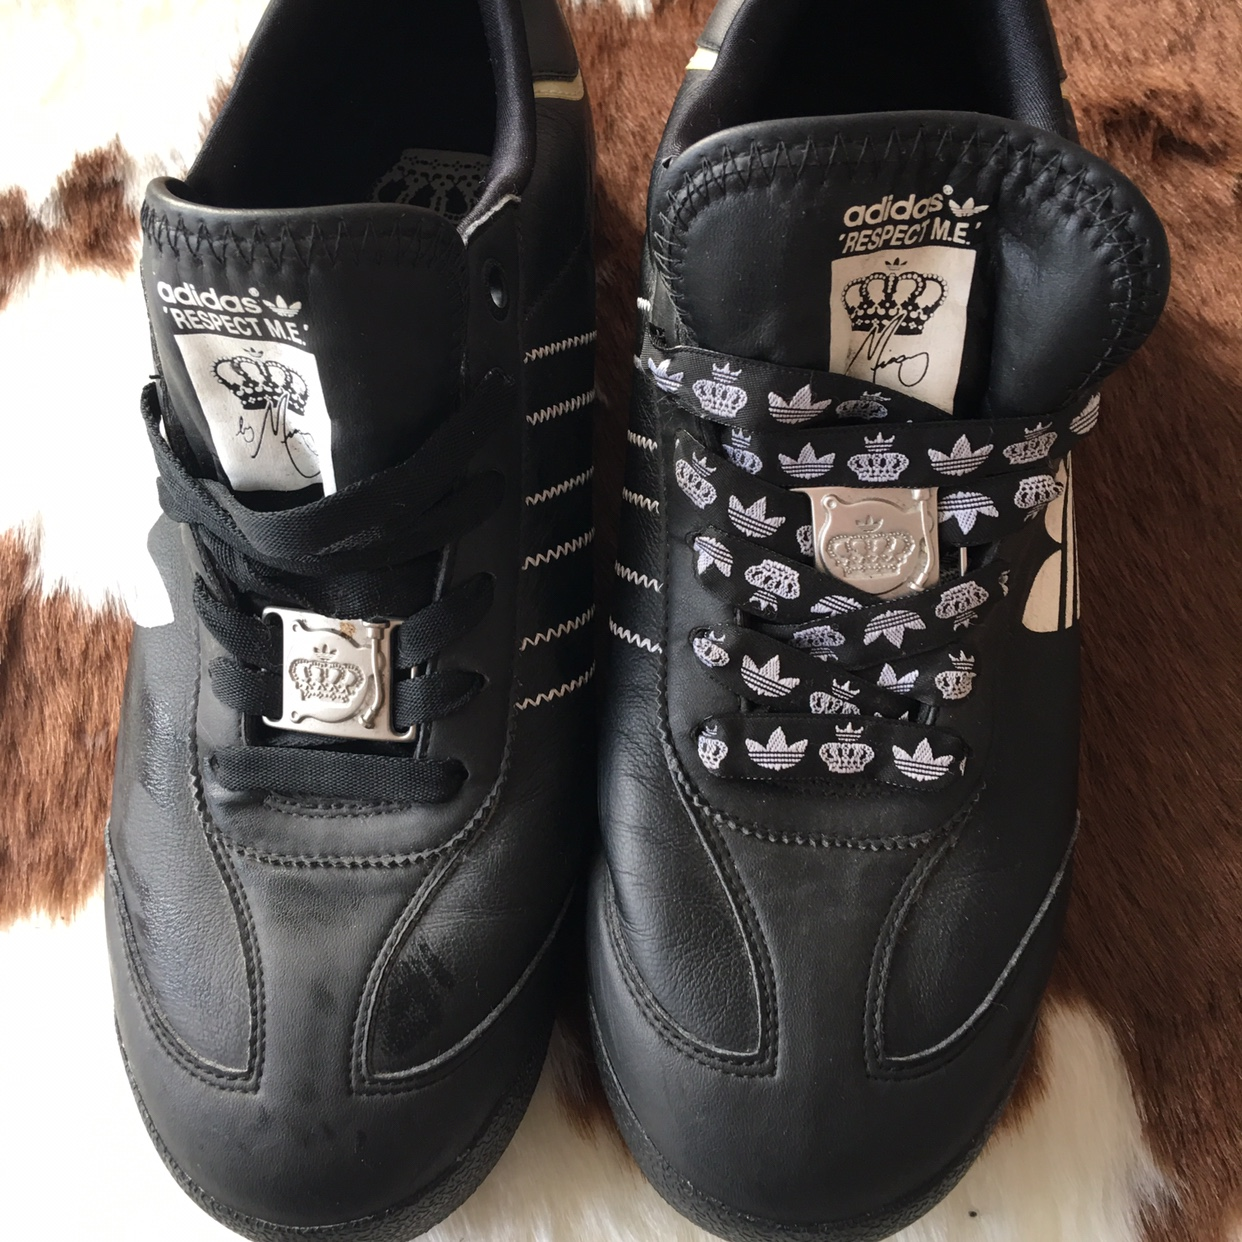 ADIDAS MISSY ELLIOT RESPECT ME LEATHER TRAINERS CASUAL SHOES